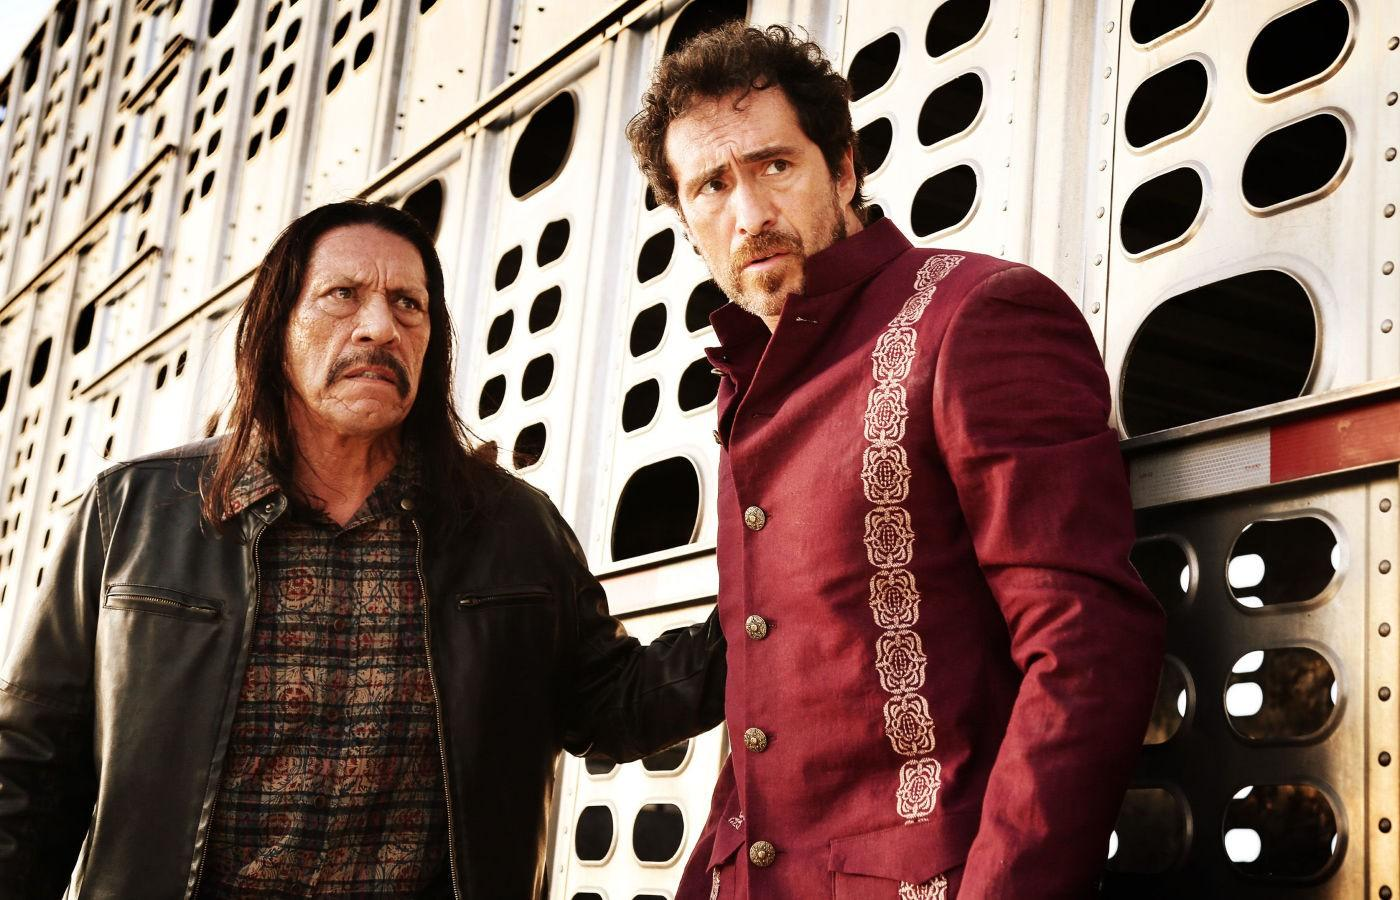 Danny Trejo (Machete), left, and Demian Bichir (Mendez) attempt to get back into the United States in